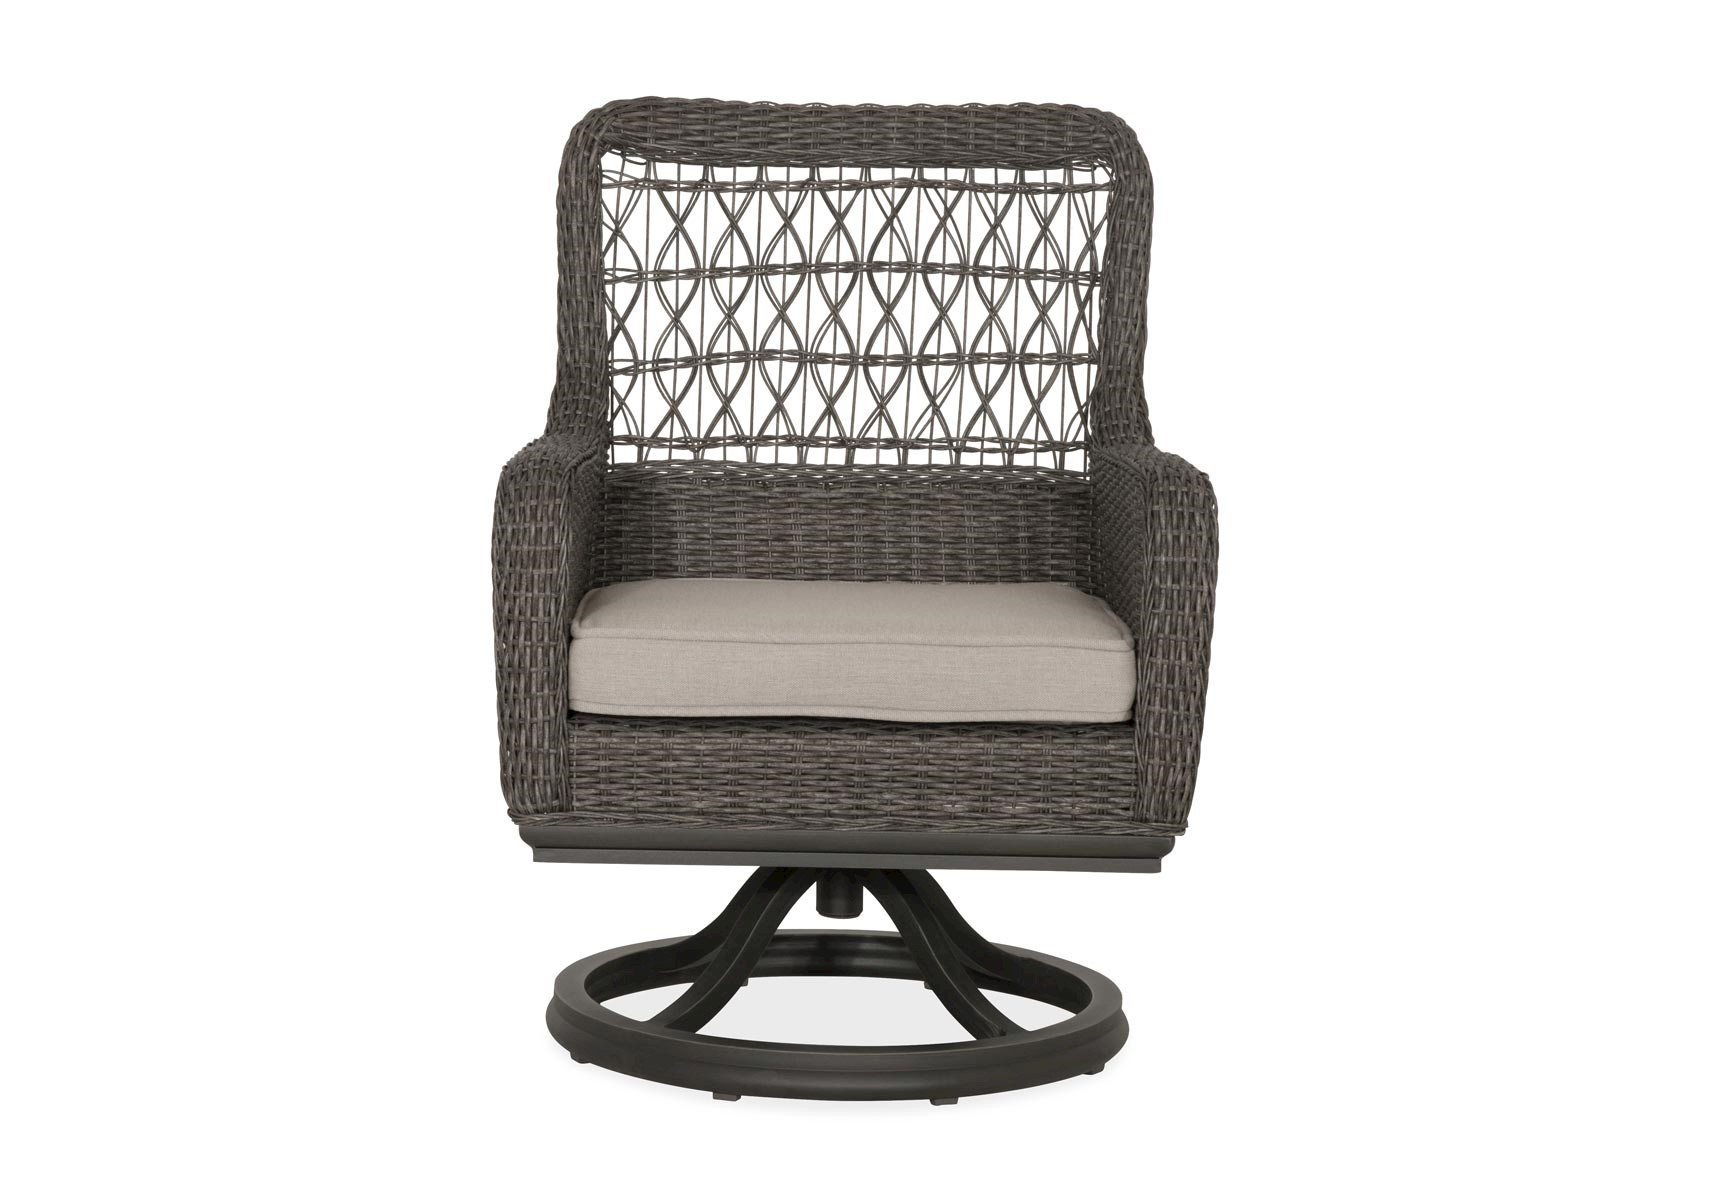 Superb Lacks Dogwood Swivel Outdoor Dining Chair By Paula Deen Caraccident5 Cool Chair Designs And Ideas Caraccident5Info